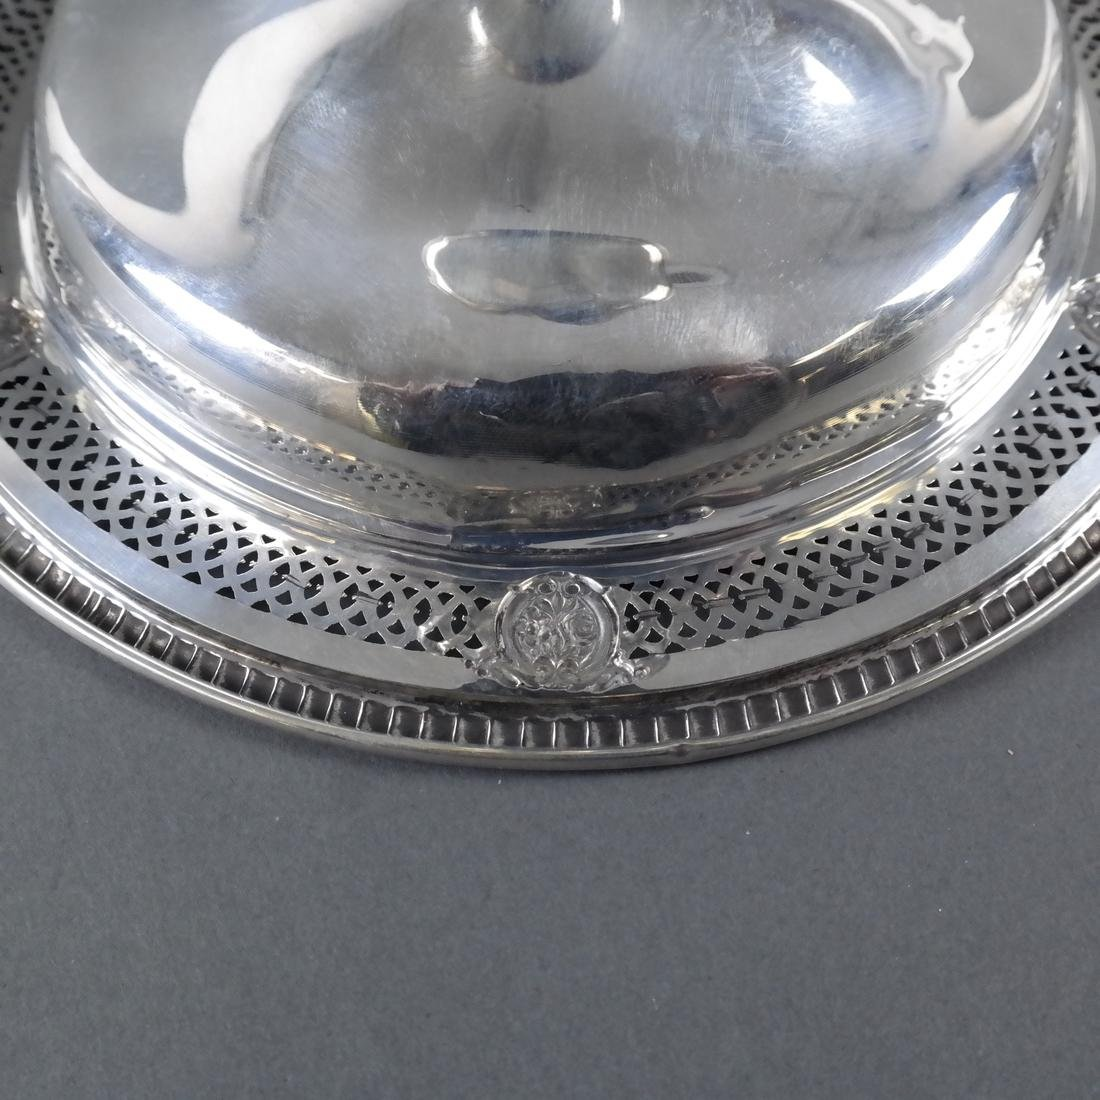 Weighted Sterling Silver Compote - 7